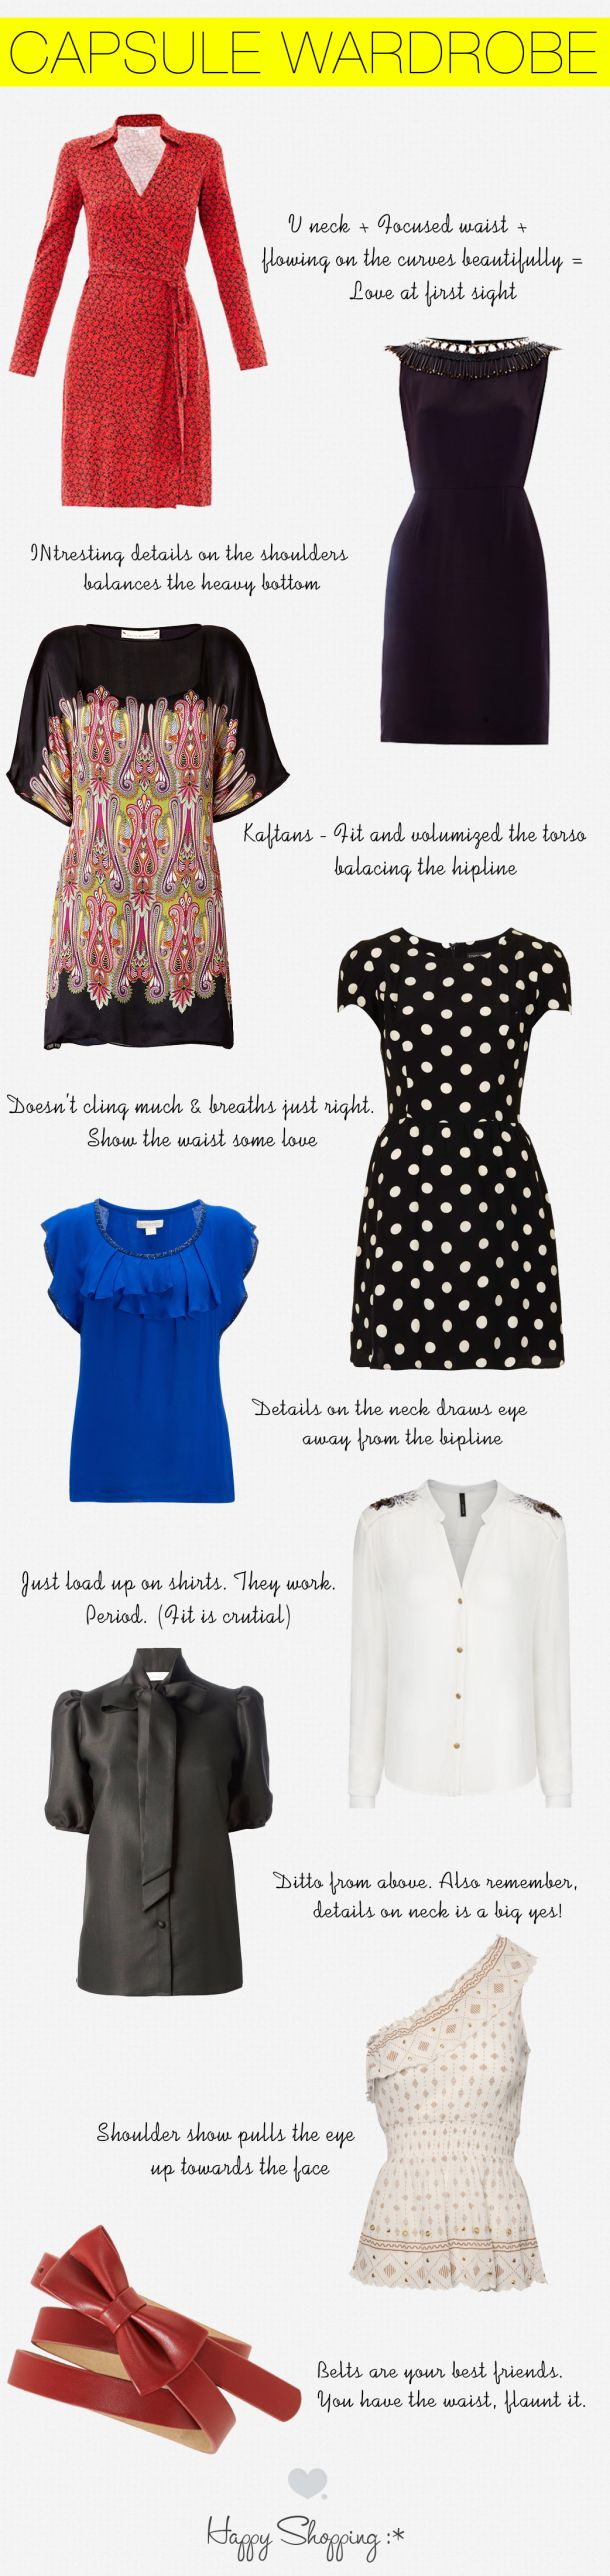 capsule wardrobe and shopping guide for pear shaped women. these are the styles of dresses and blouses that flatter you and we tell you why!